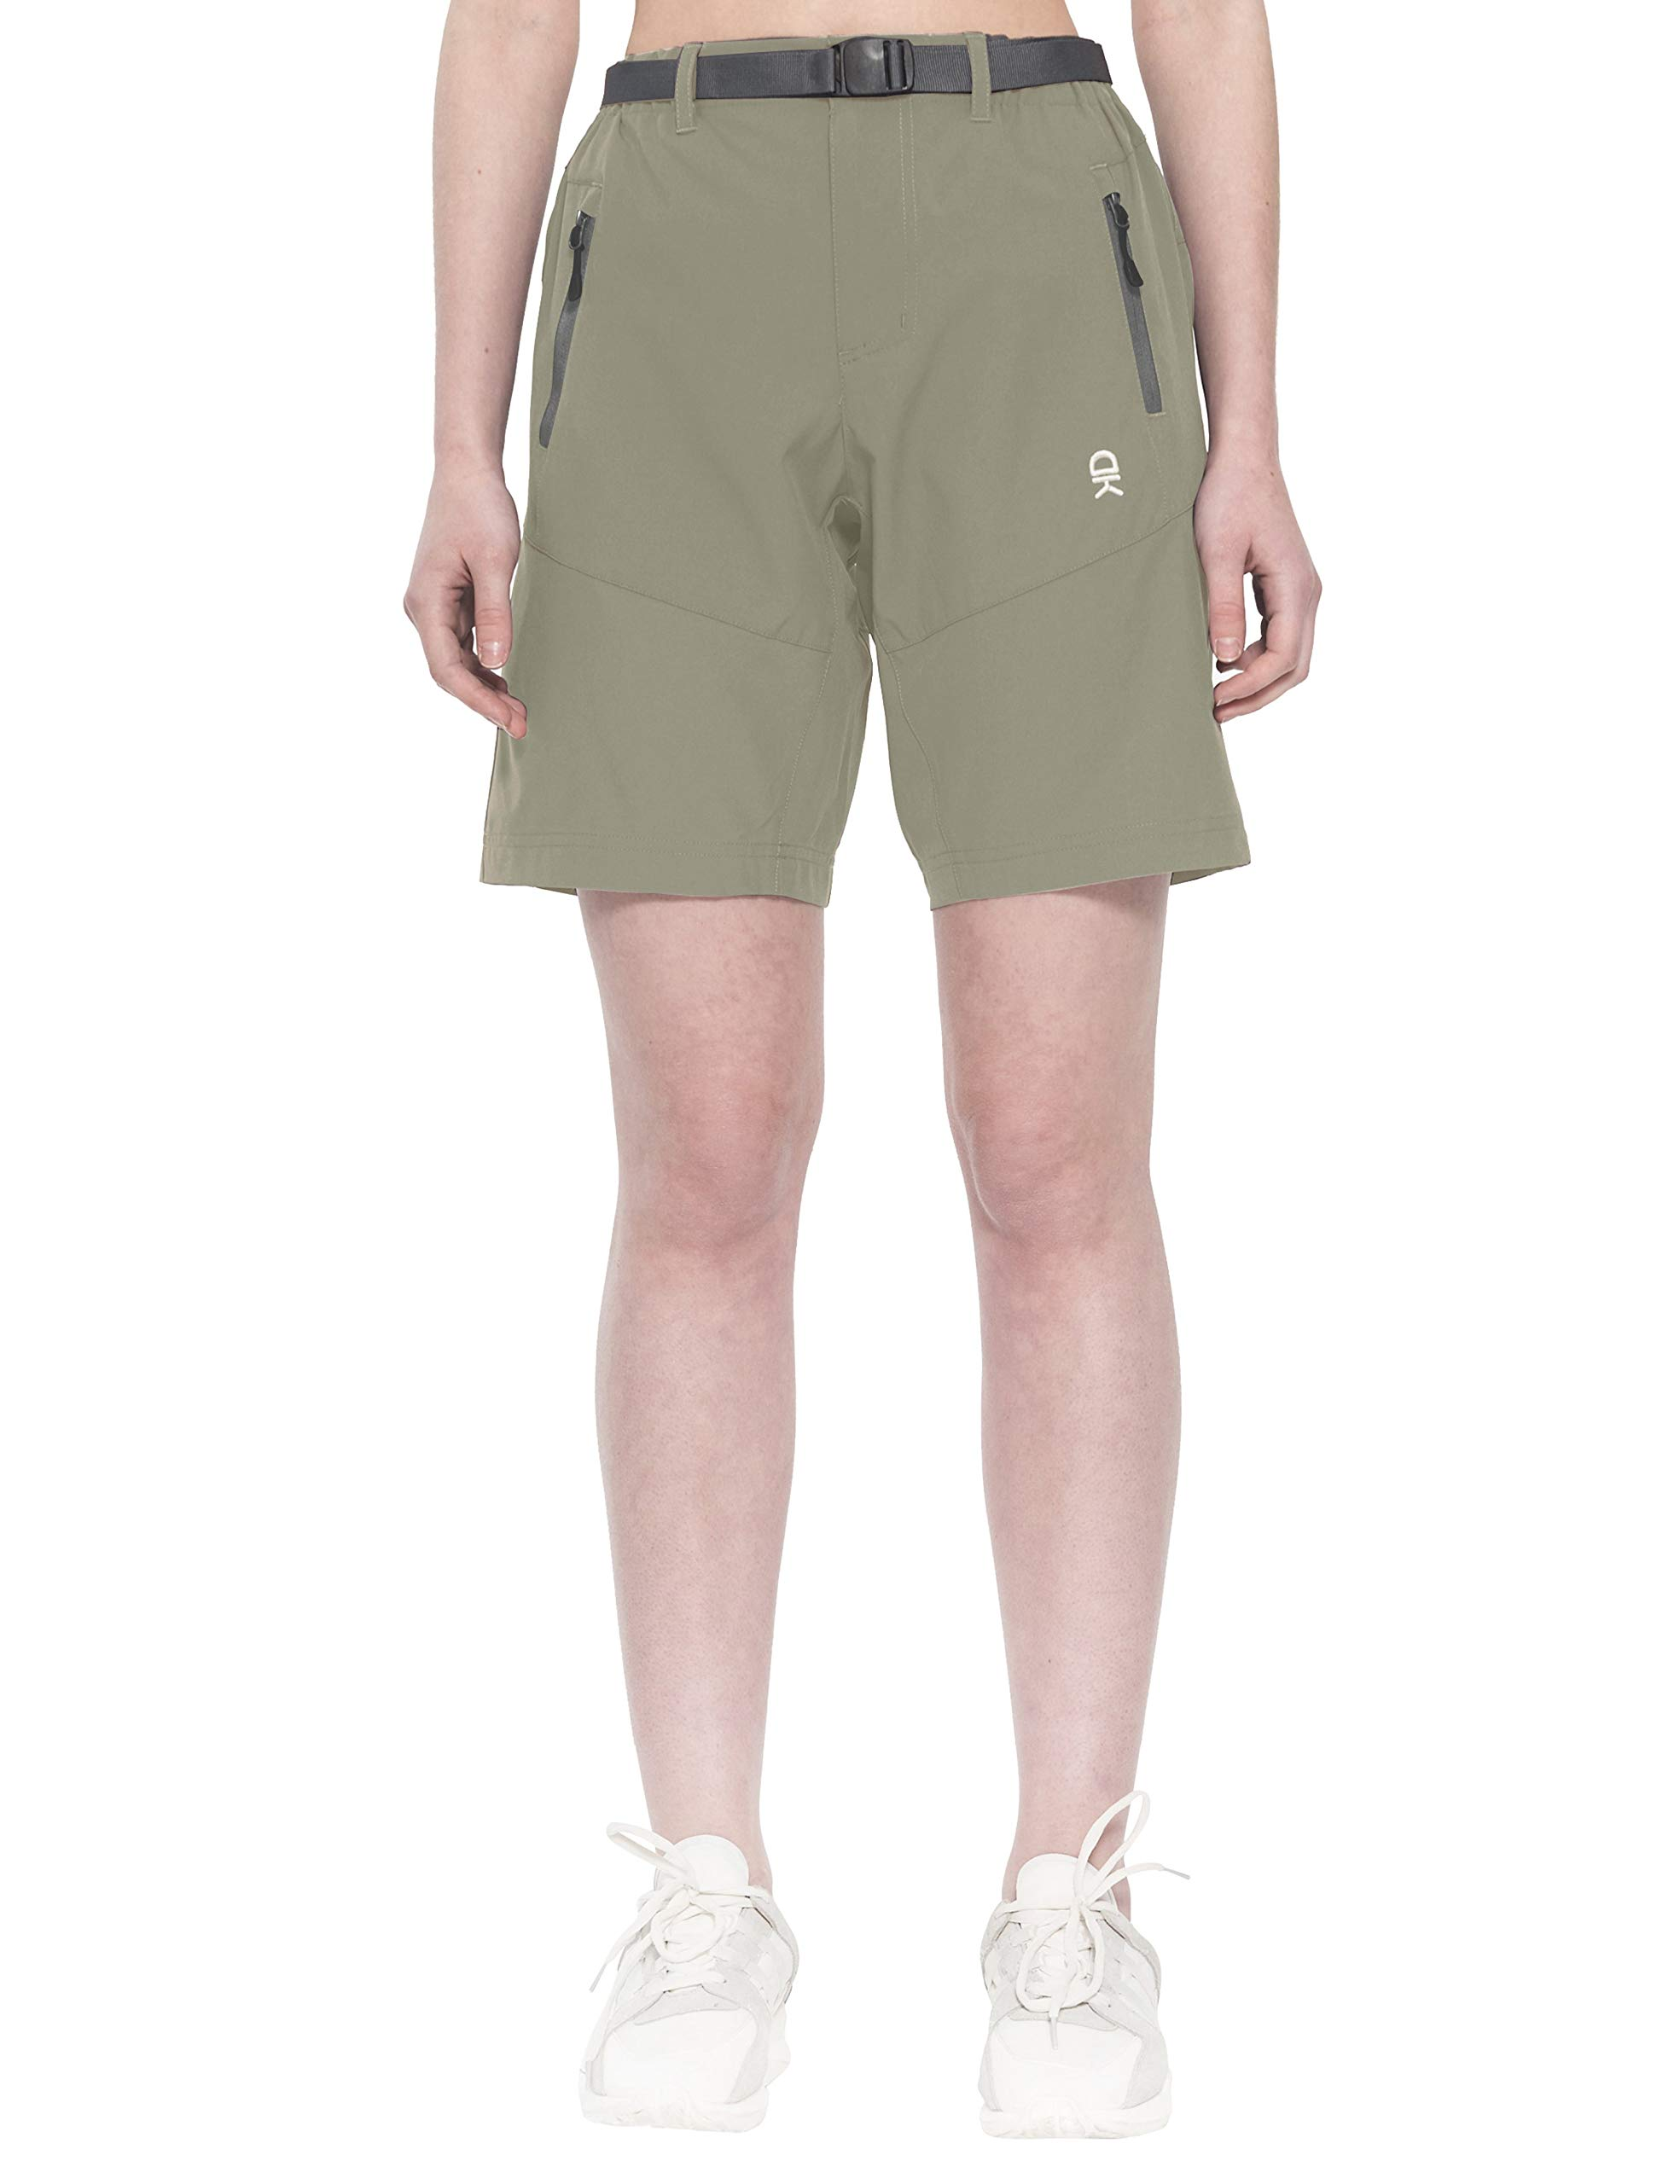 Little Donkey Andy Women's Stretch Quick Dry Cargo Shorts for Hiking, Camping, Travel Silver Sage Size XXL by Little Donkey Andy